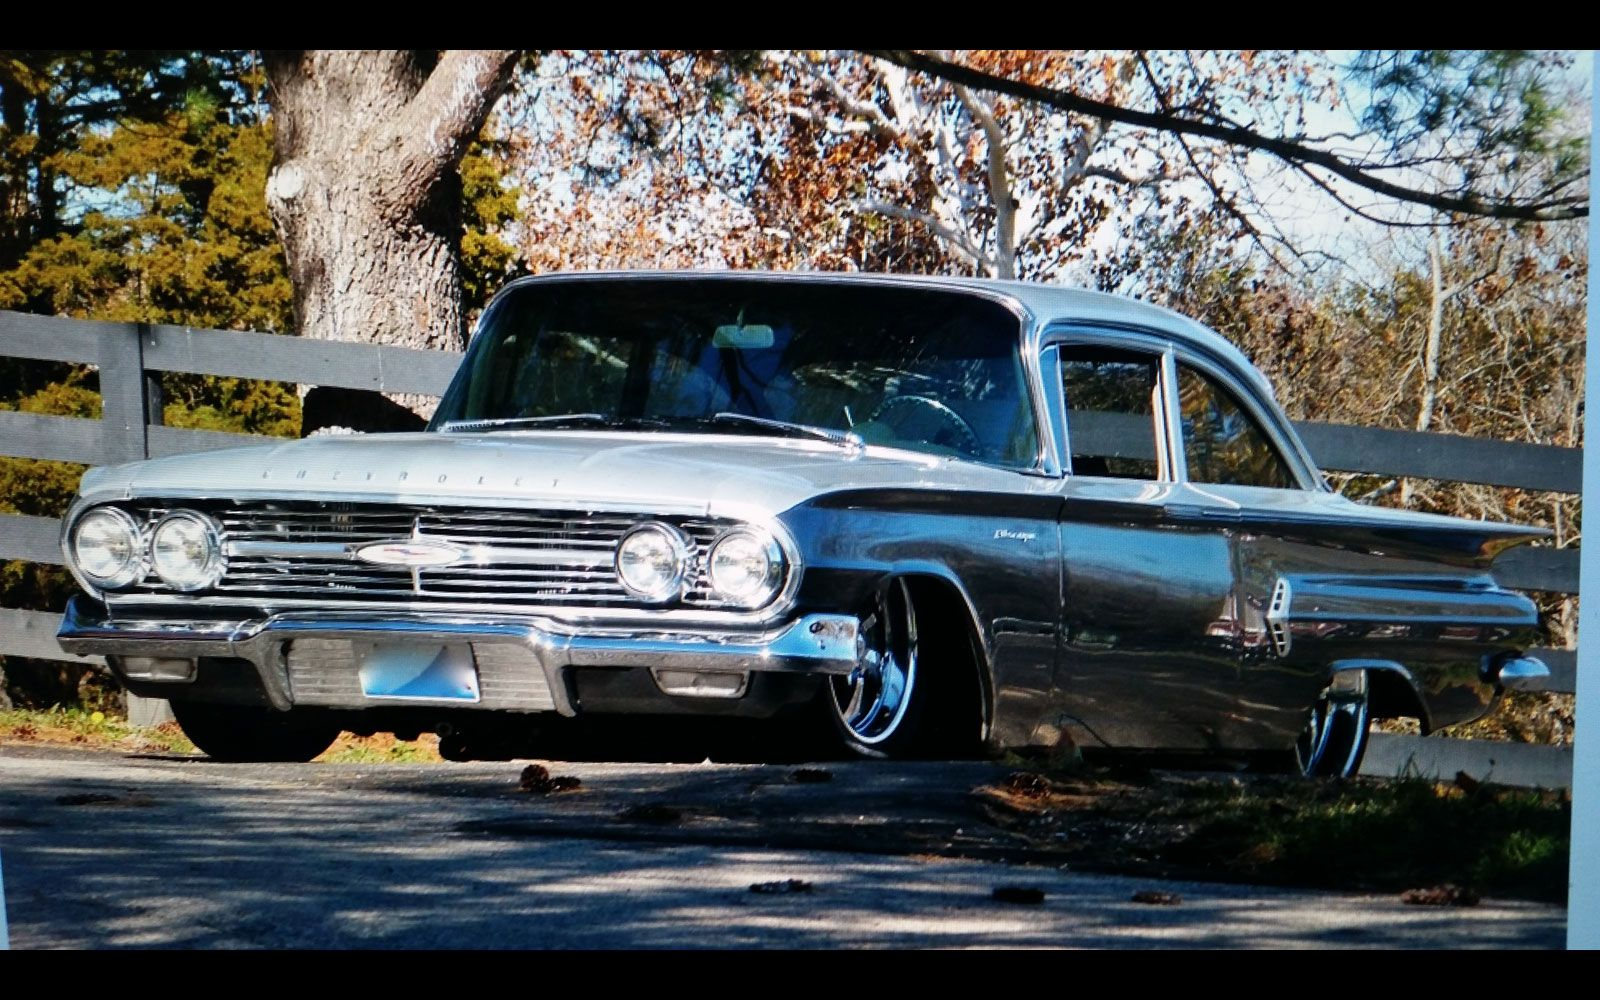 All Chevy 1960 chevrolet biscayne 2 door : 1960 Biscayne | The X frame GM's | Pinterest | Cars, General ...